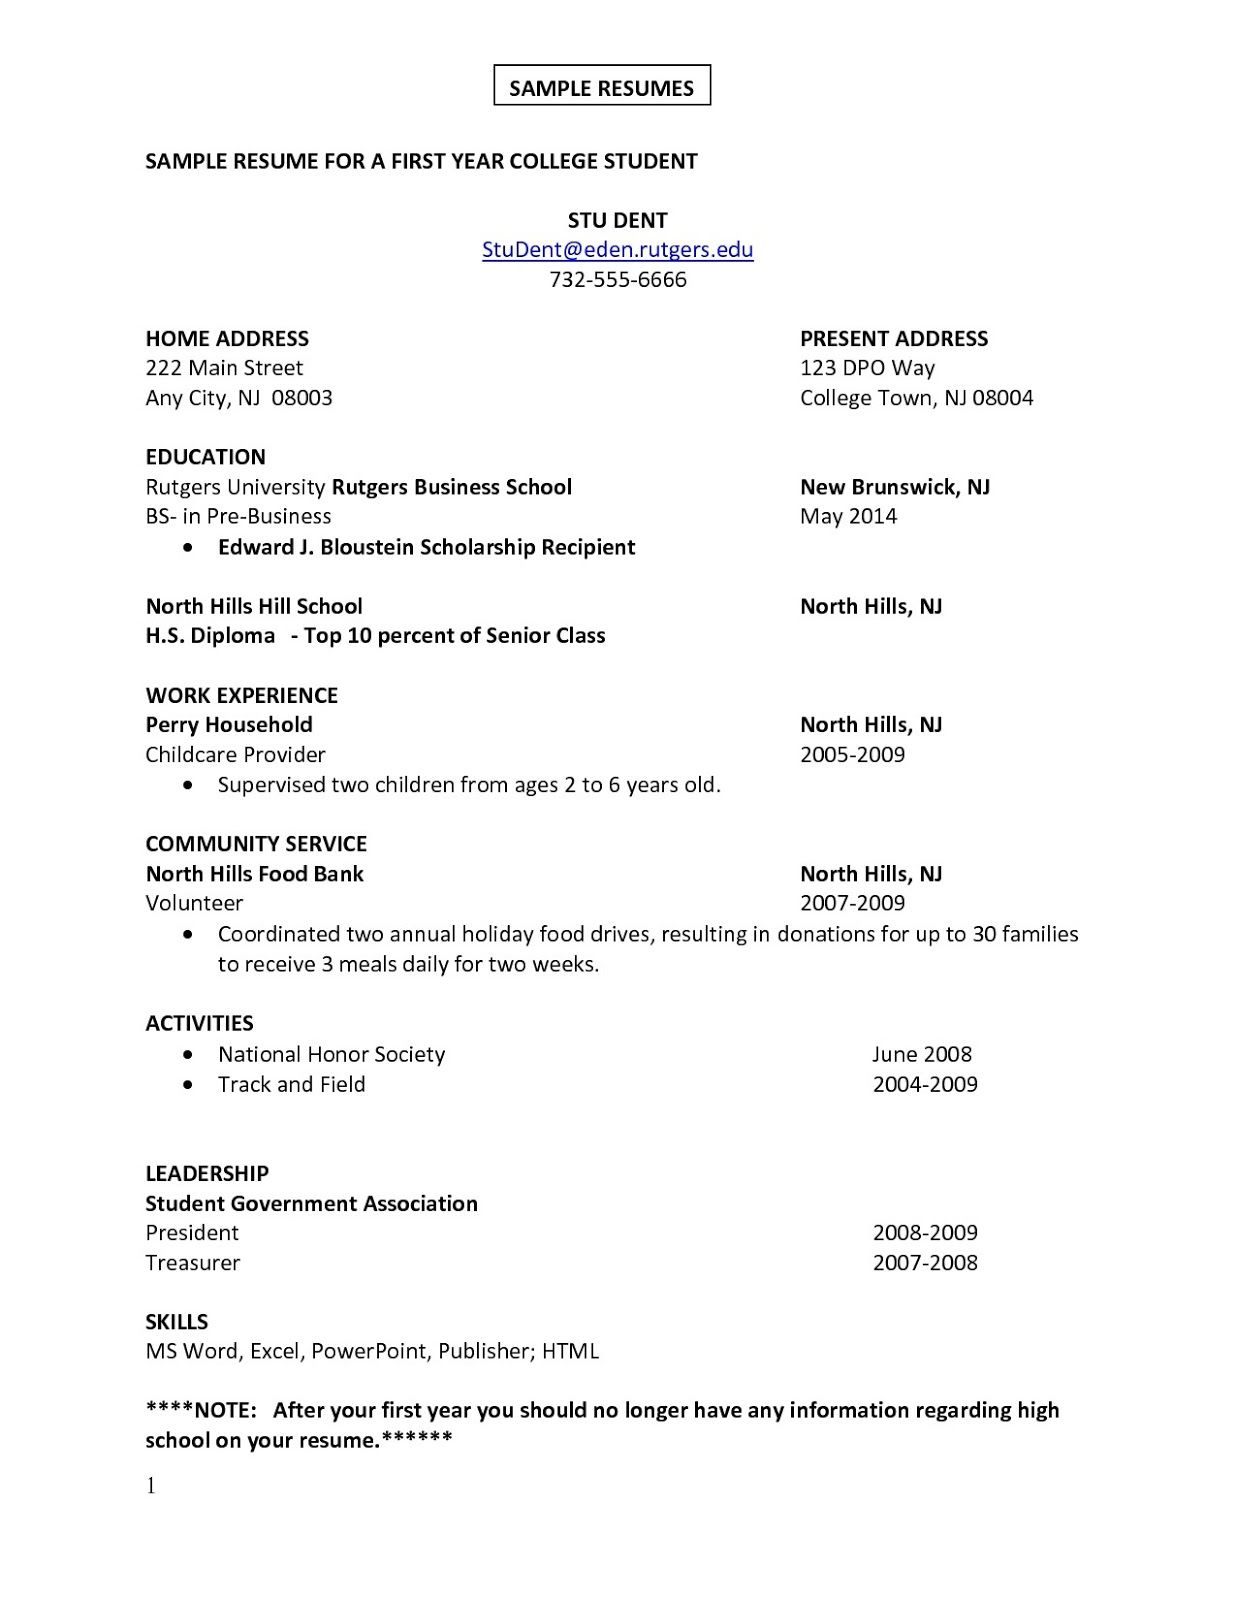 first job sample resume sample resumes - First Job Resume Template